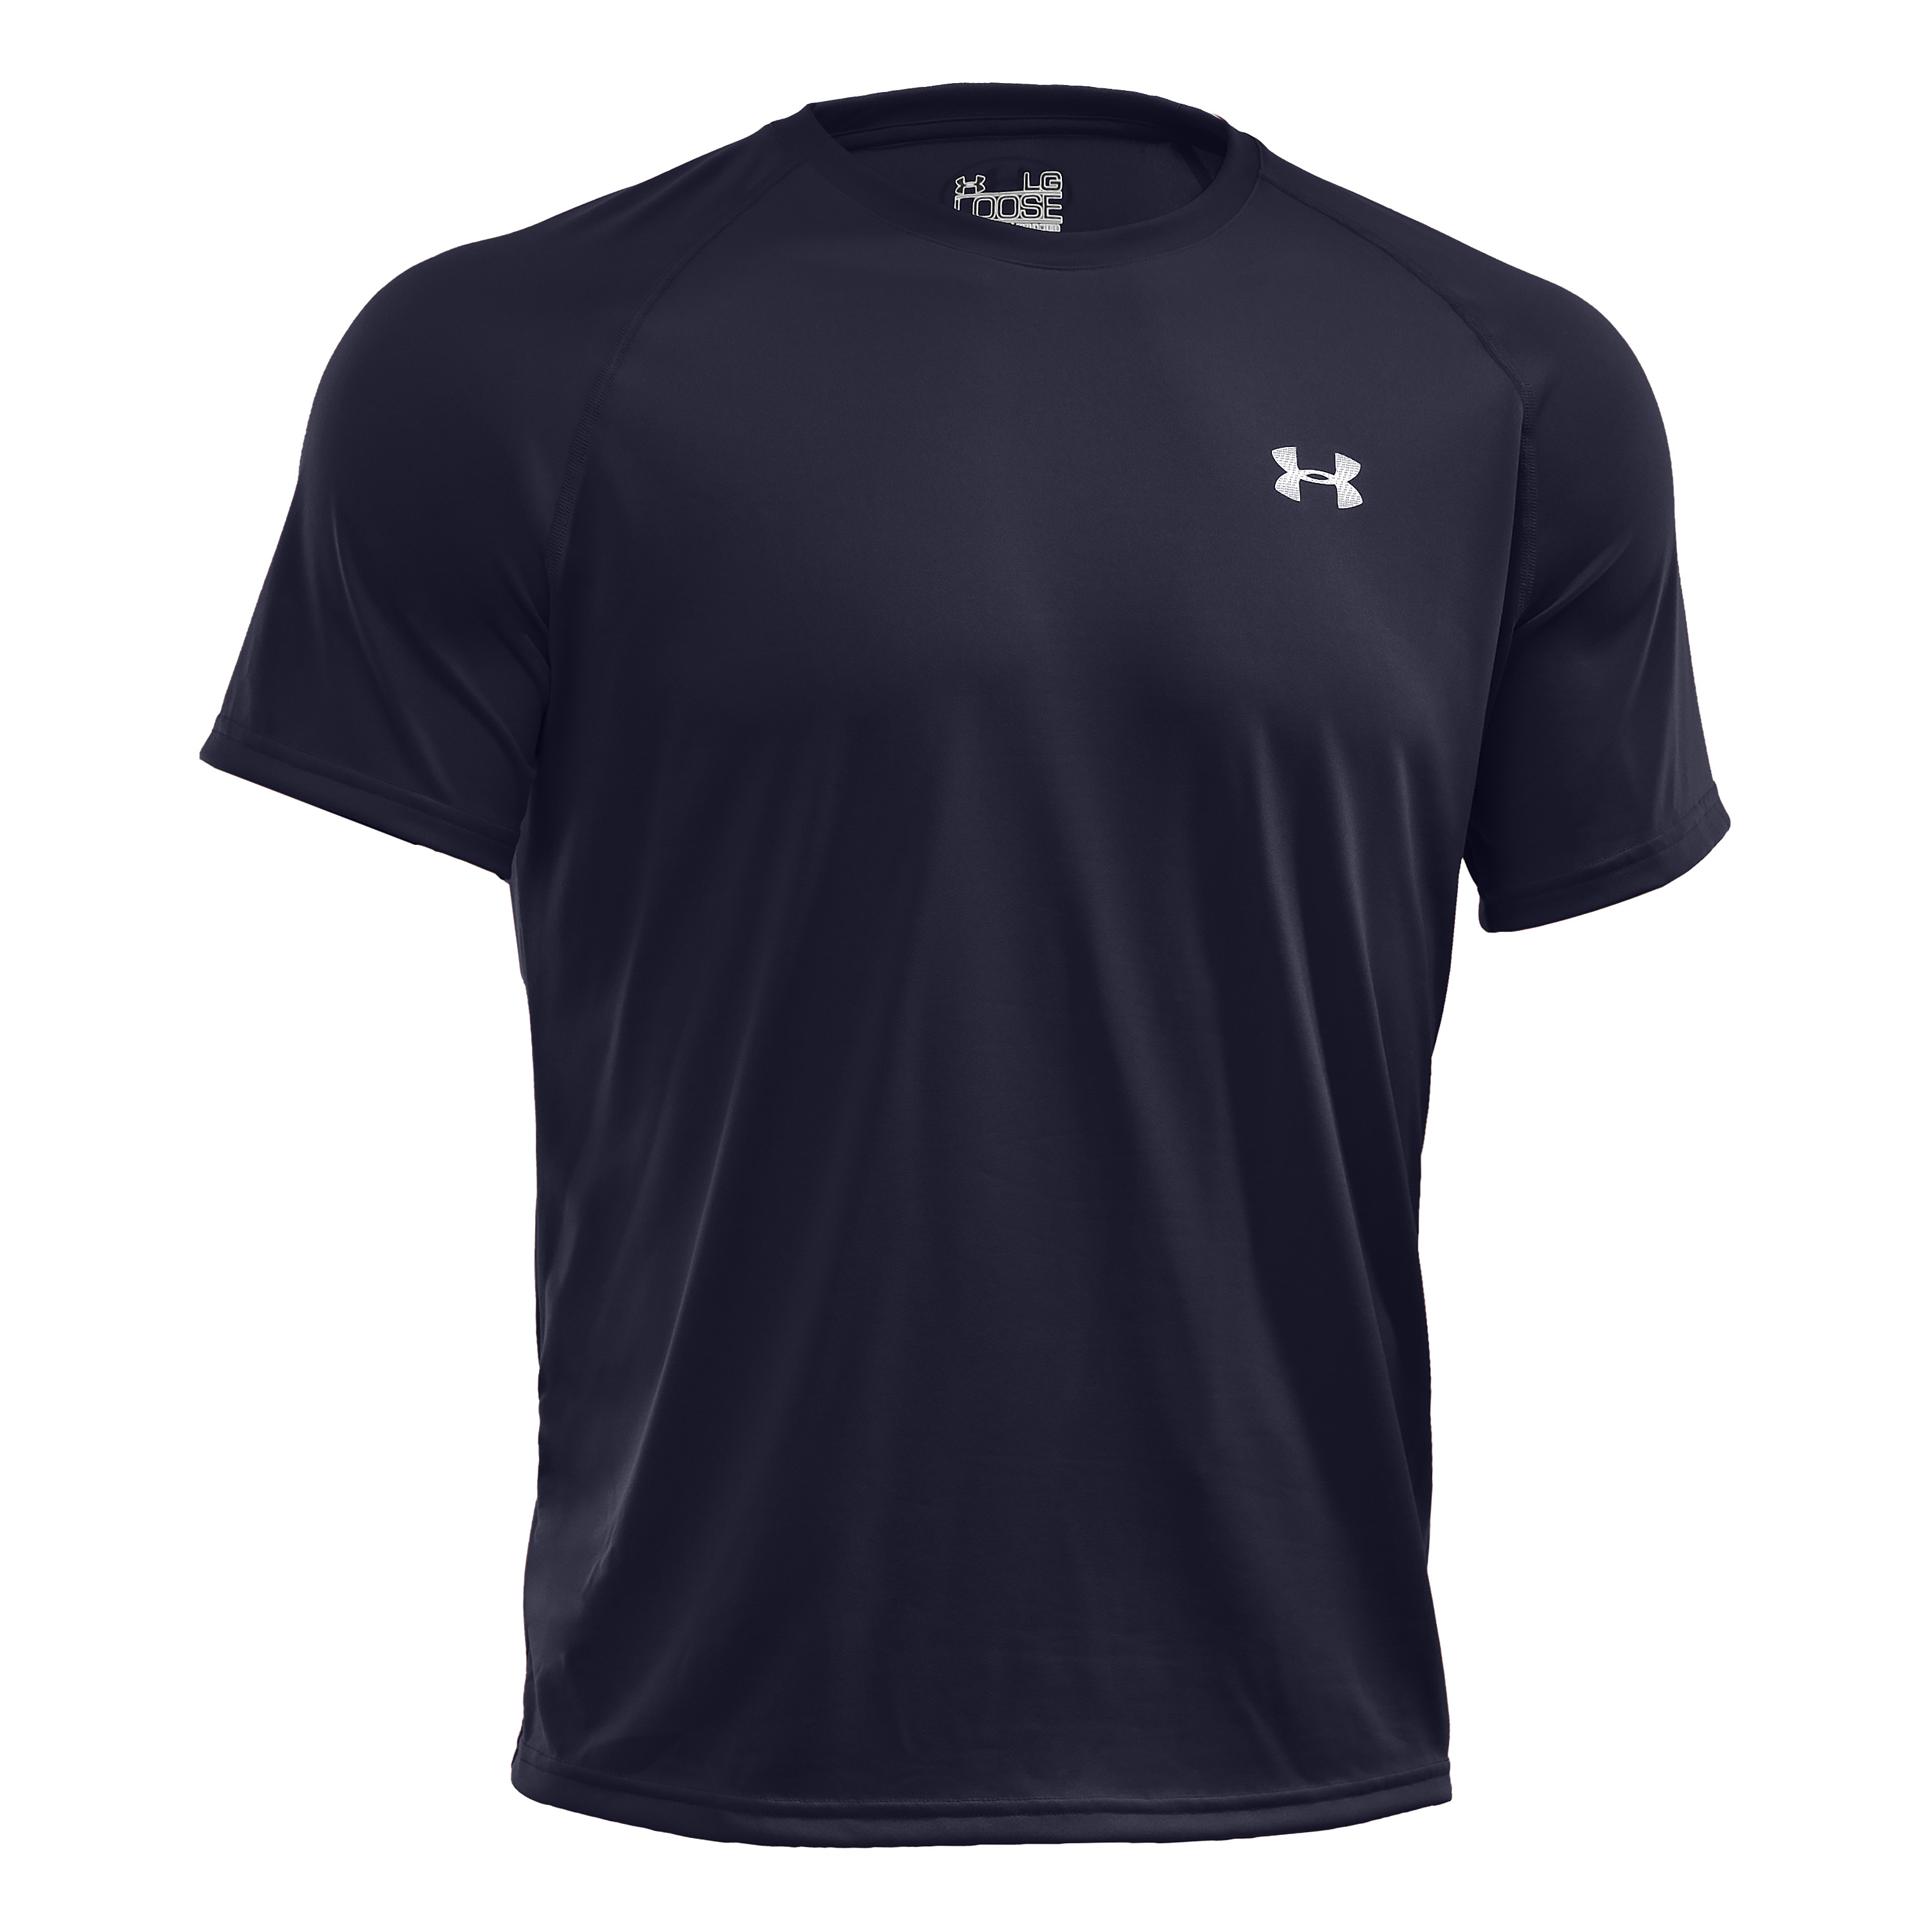 Under Armour T-Shirt Tech SS Tee dunkelblau